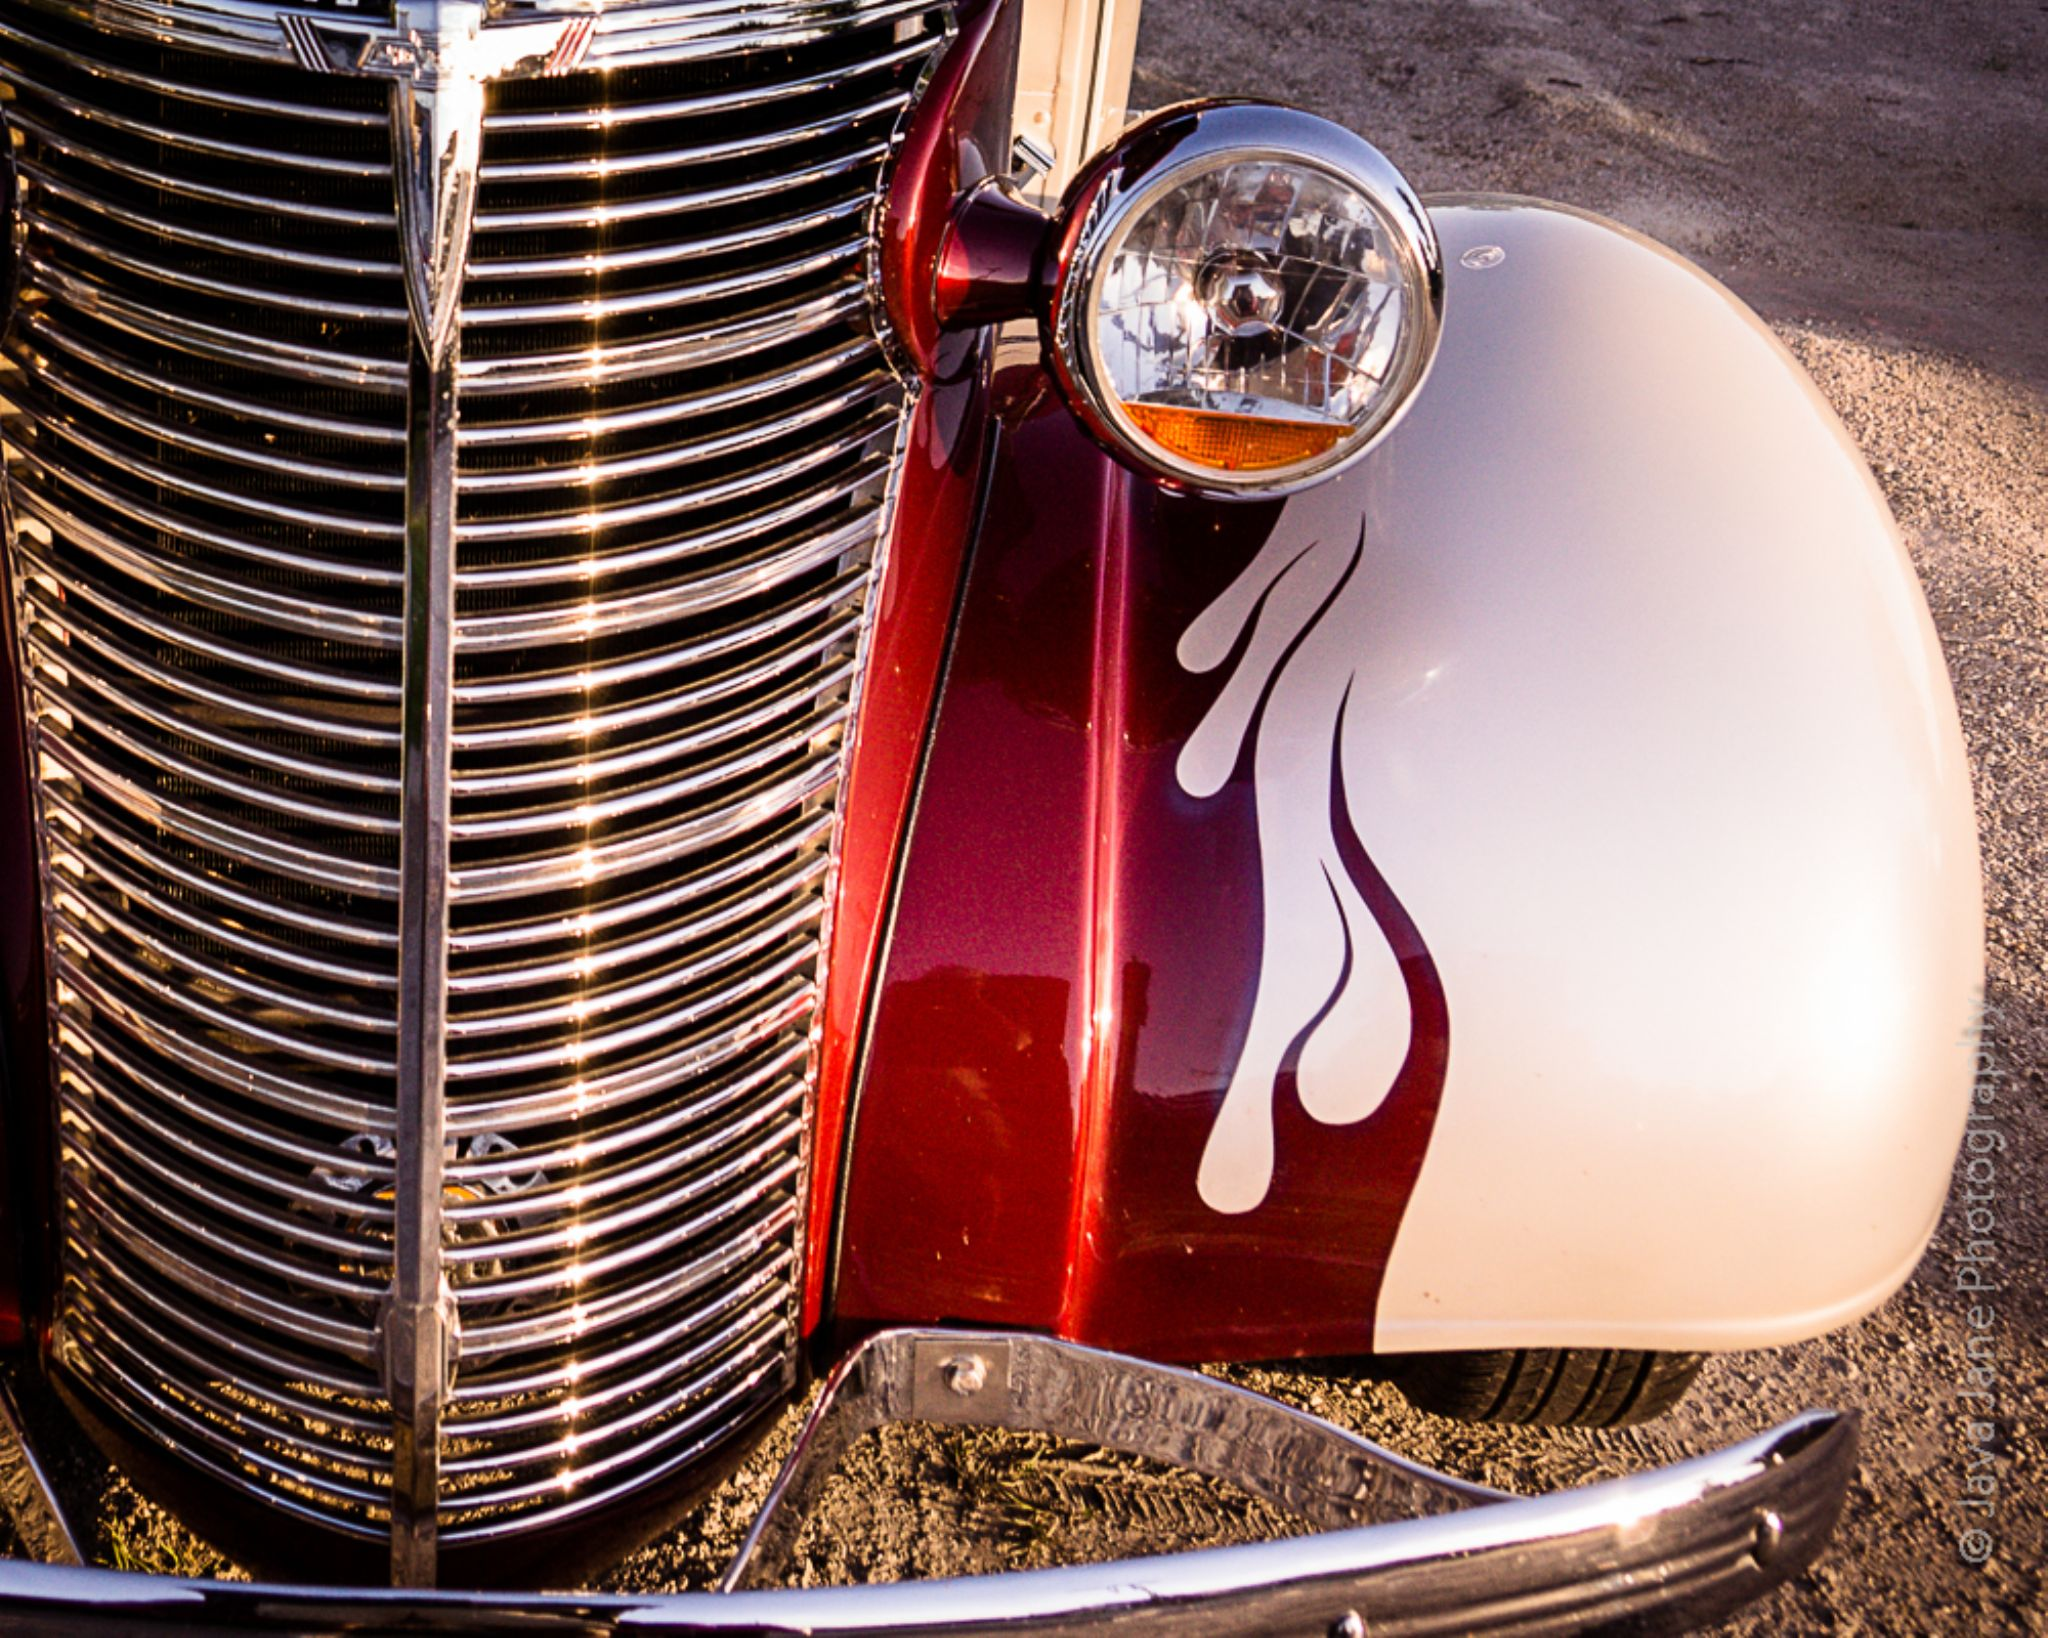 Chevy and Flames by Tony Harris